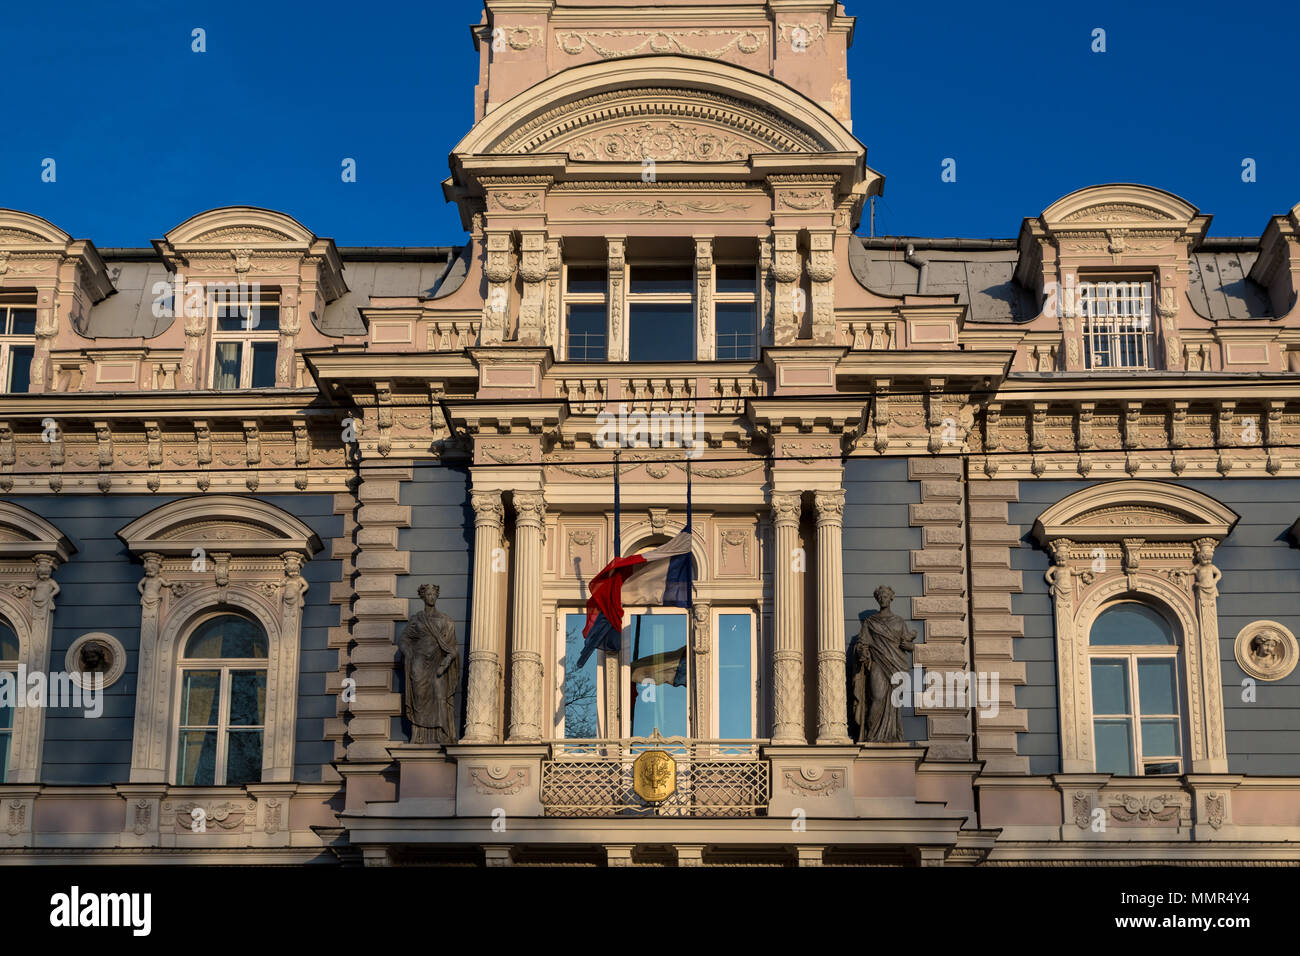 Latvia, Riga, Embassy of France - Stock Image